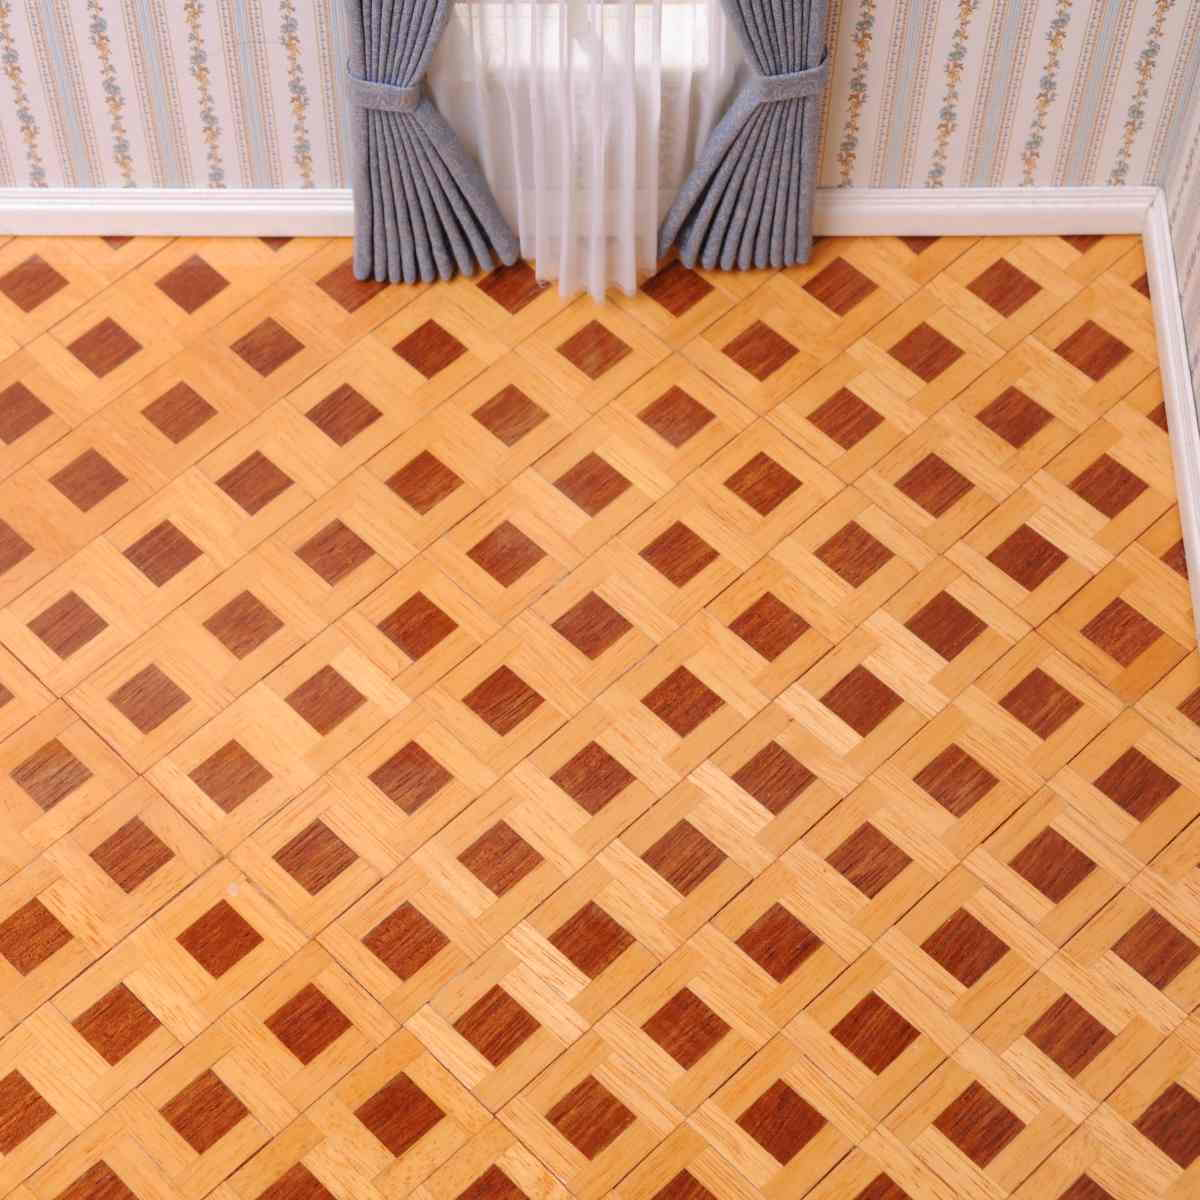 Square pattern parquet floor 寄せ木張りの床・正方形タイプ